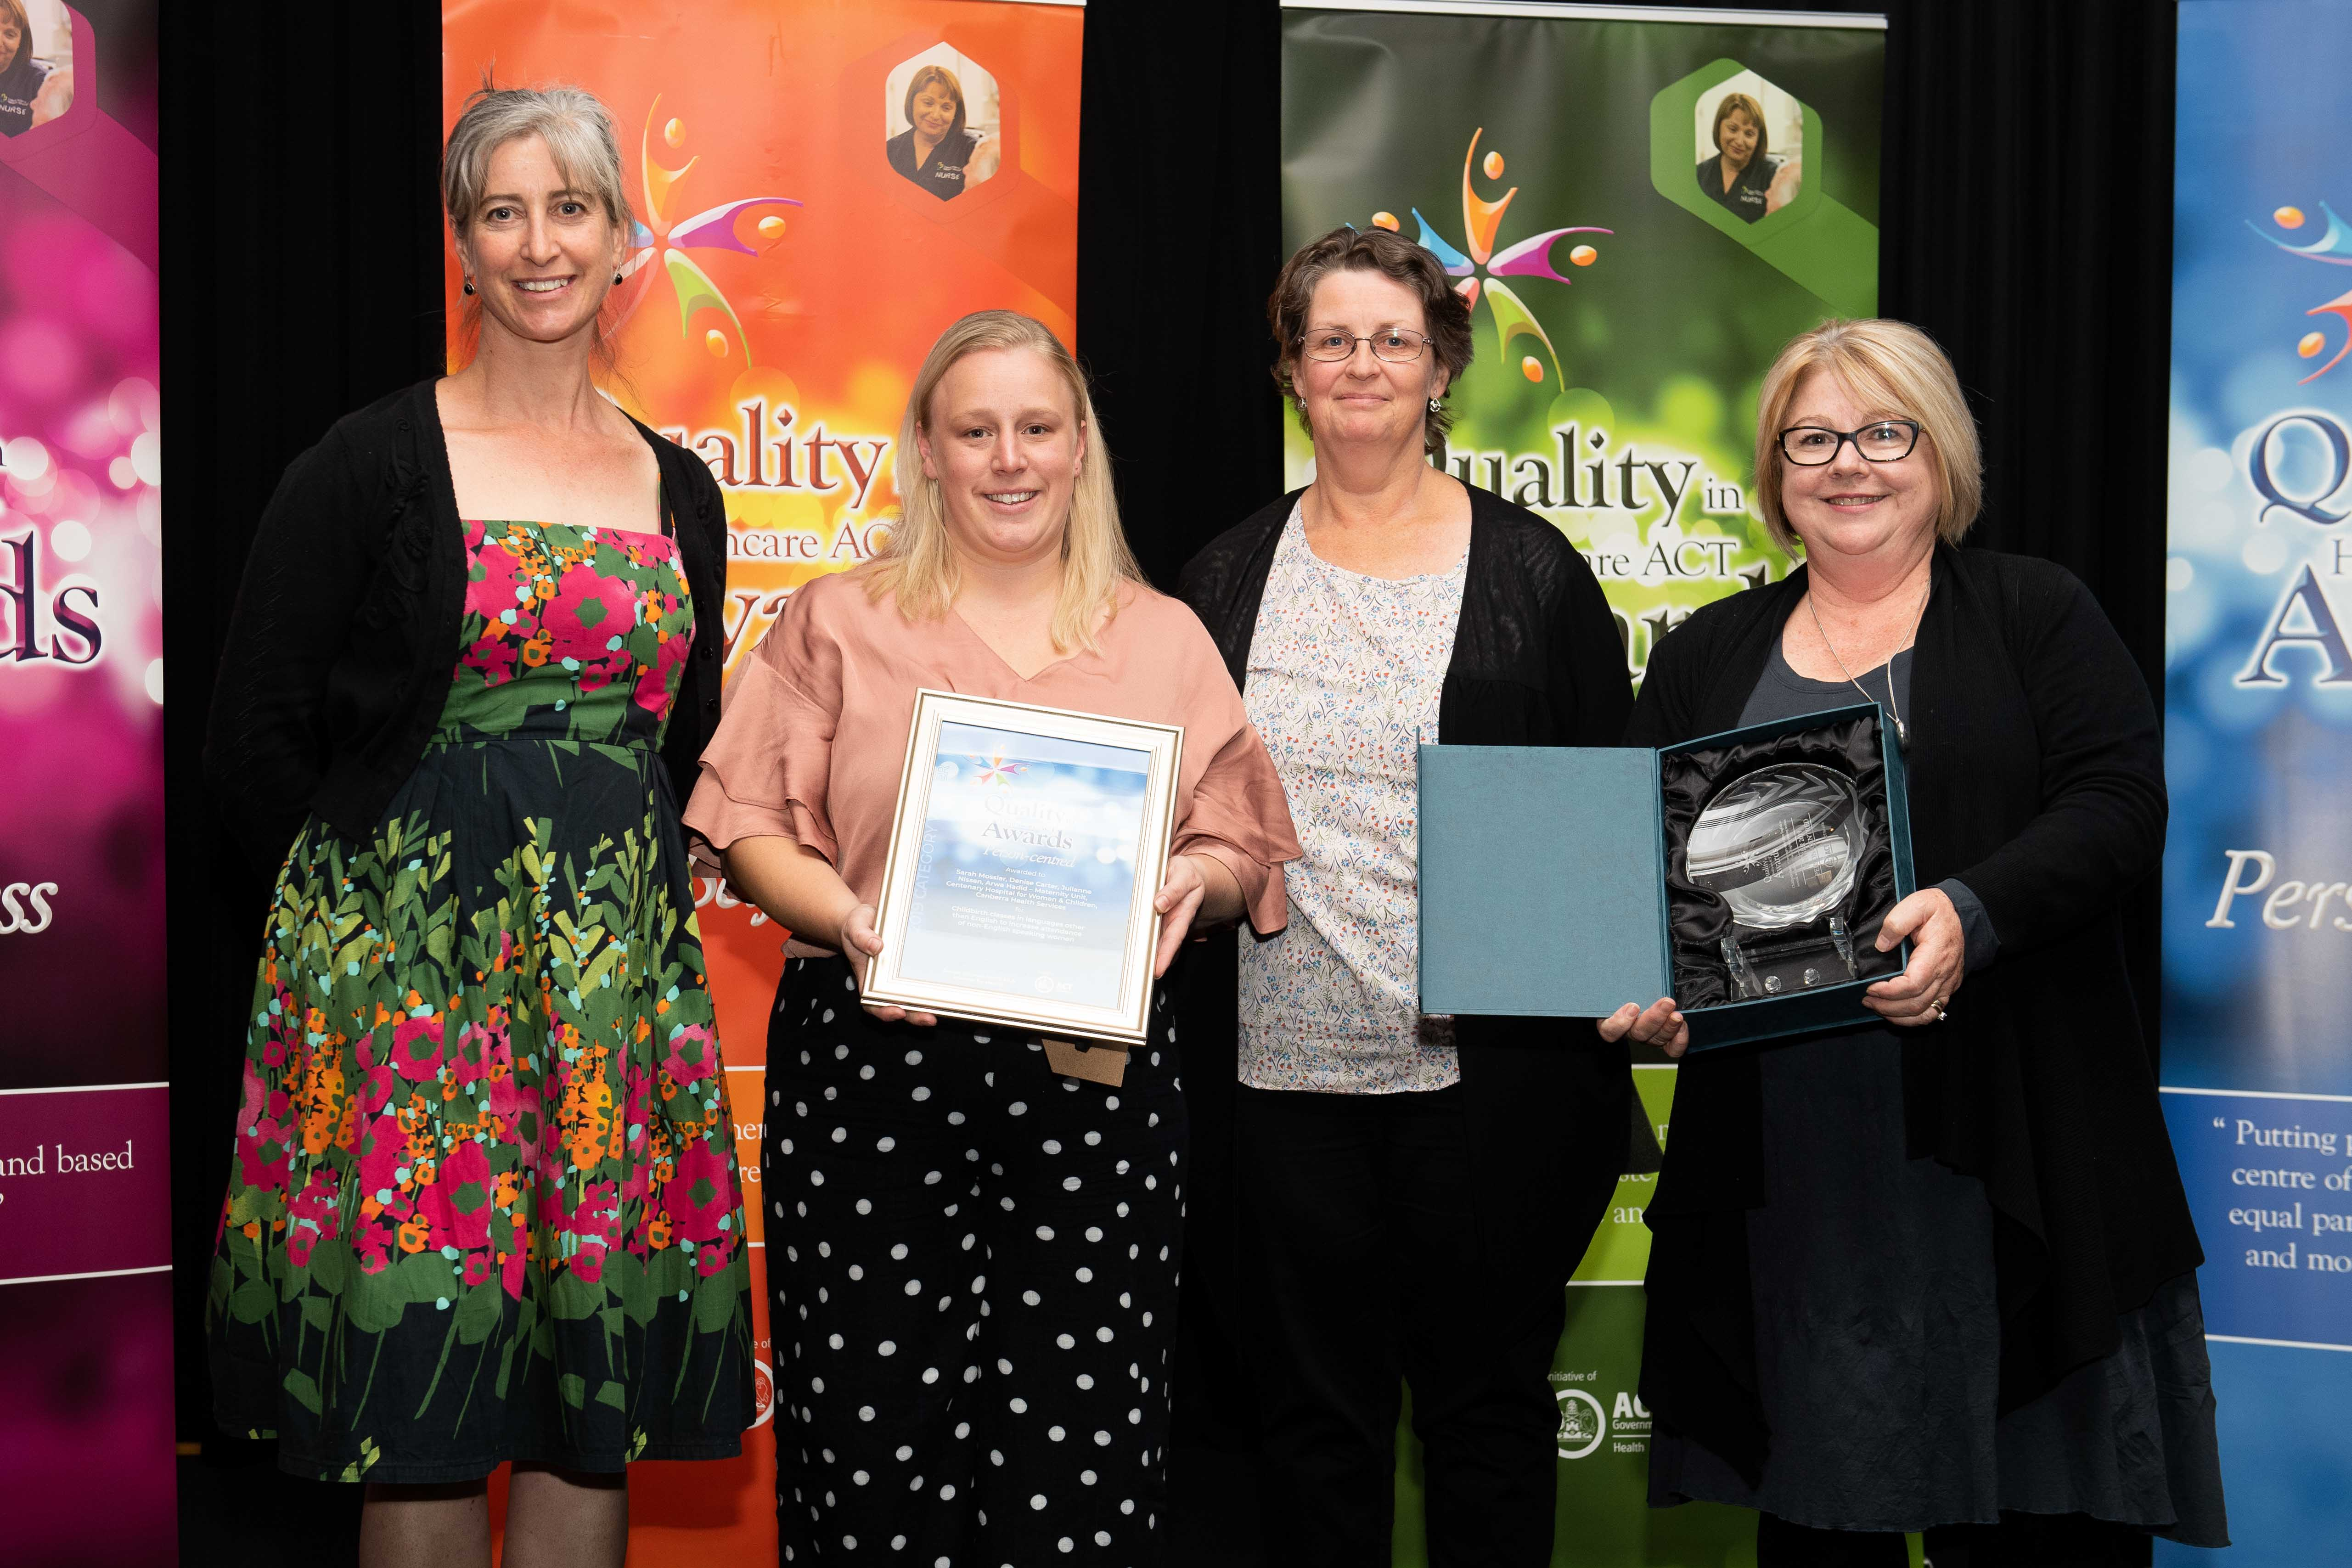 Quality Awards - Person centred